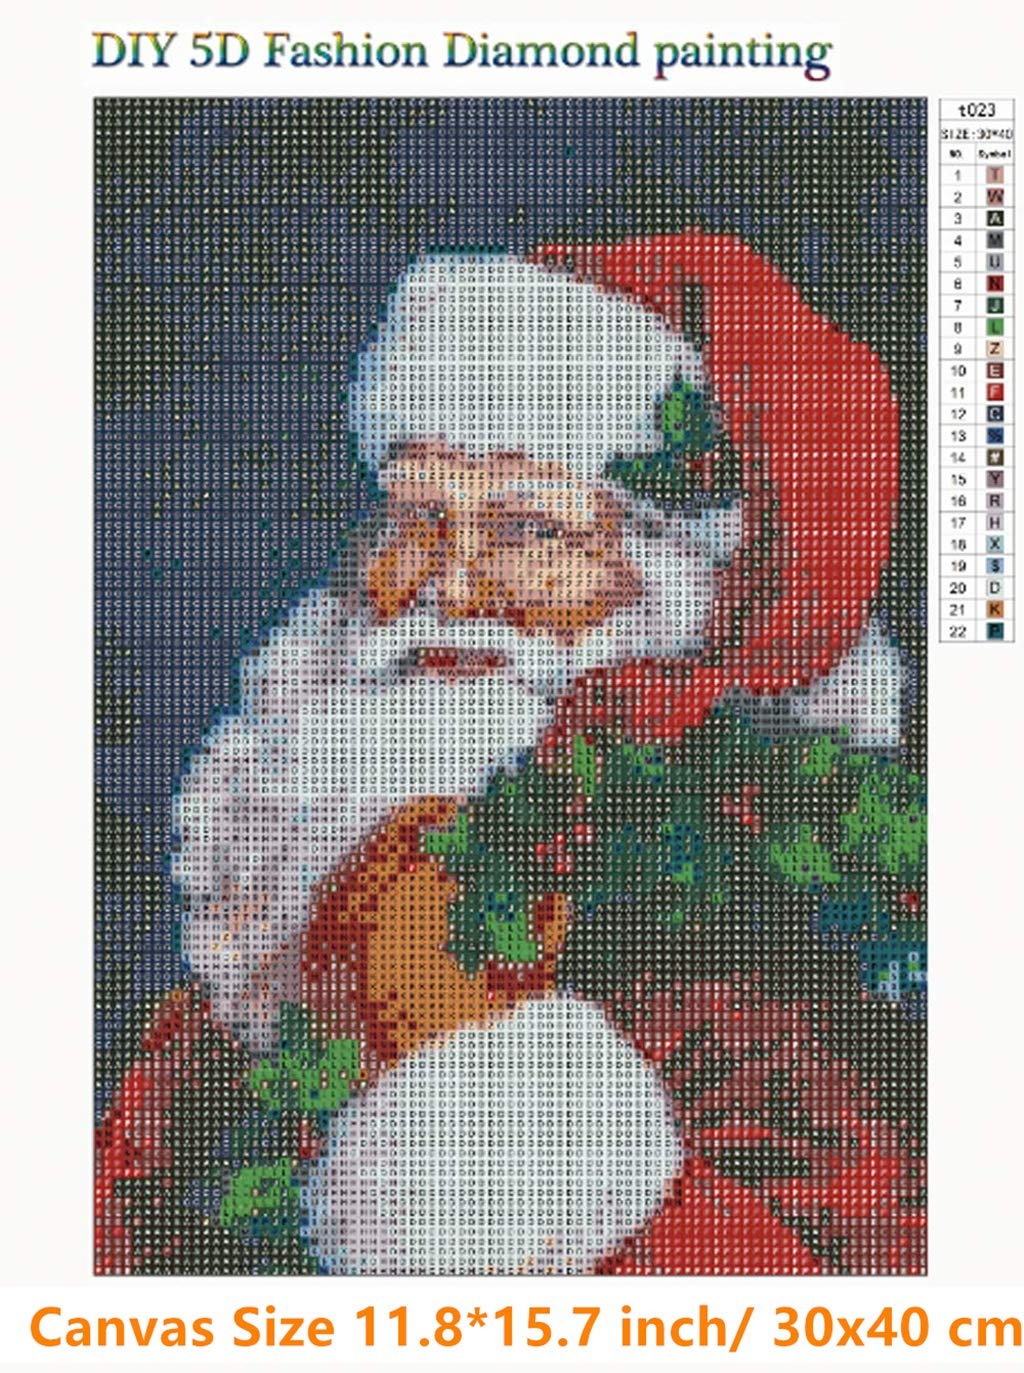 Full Drill Santa Claus Rhinestone Embroidery Cross Stitch Pictures Arts Craft Home Wall Decor 11.8x15.8 inch Diamond Painting Kits for Adults